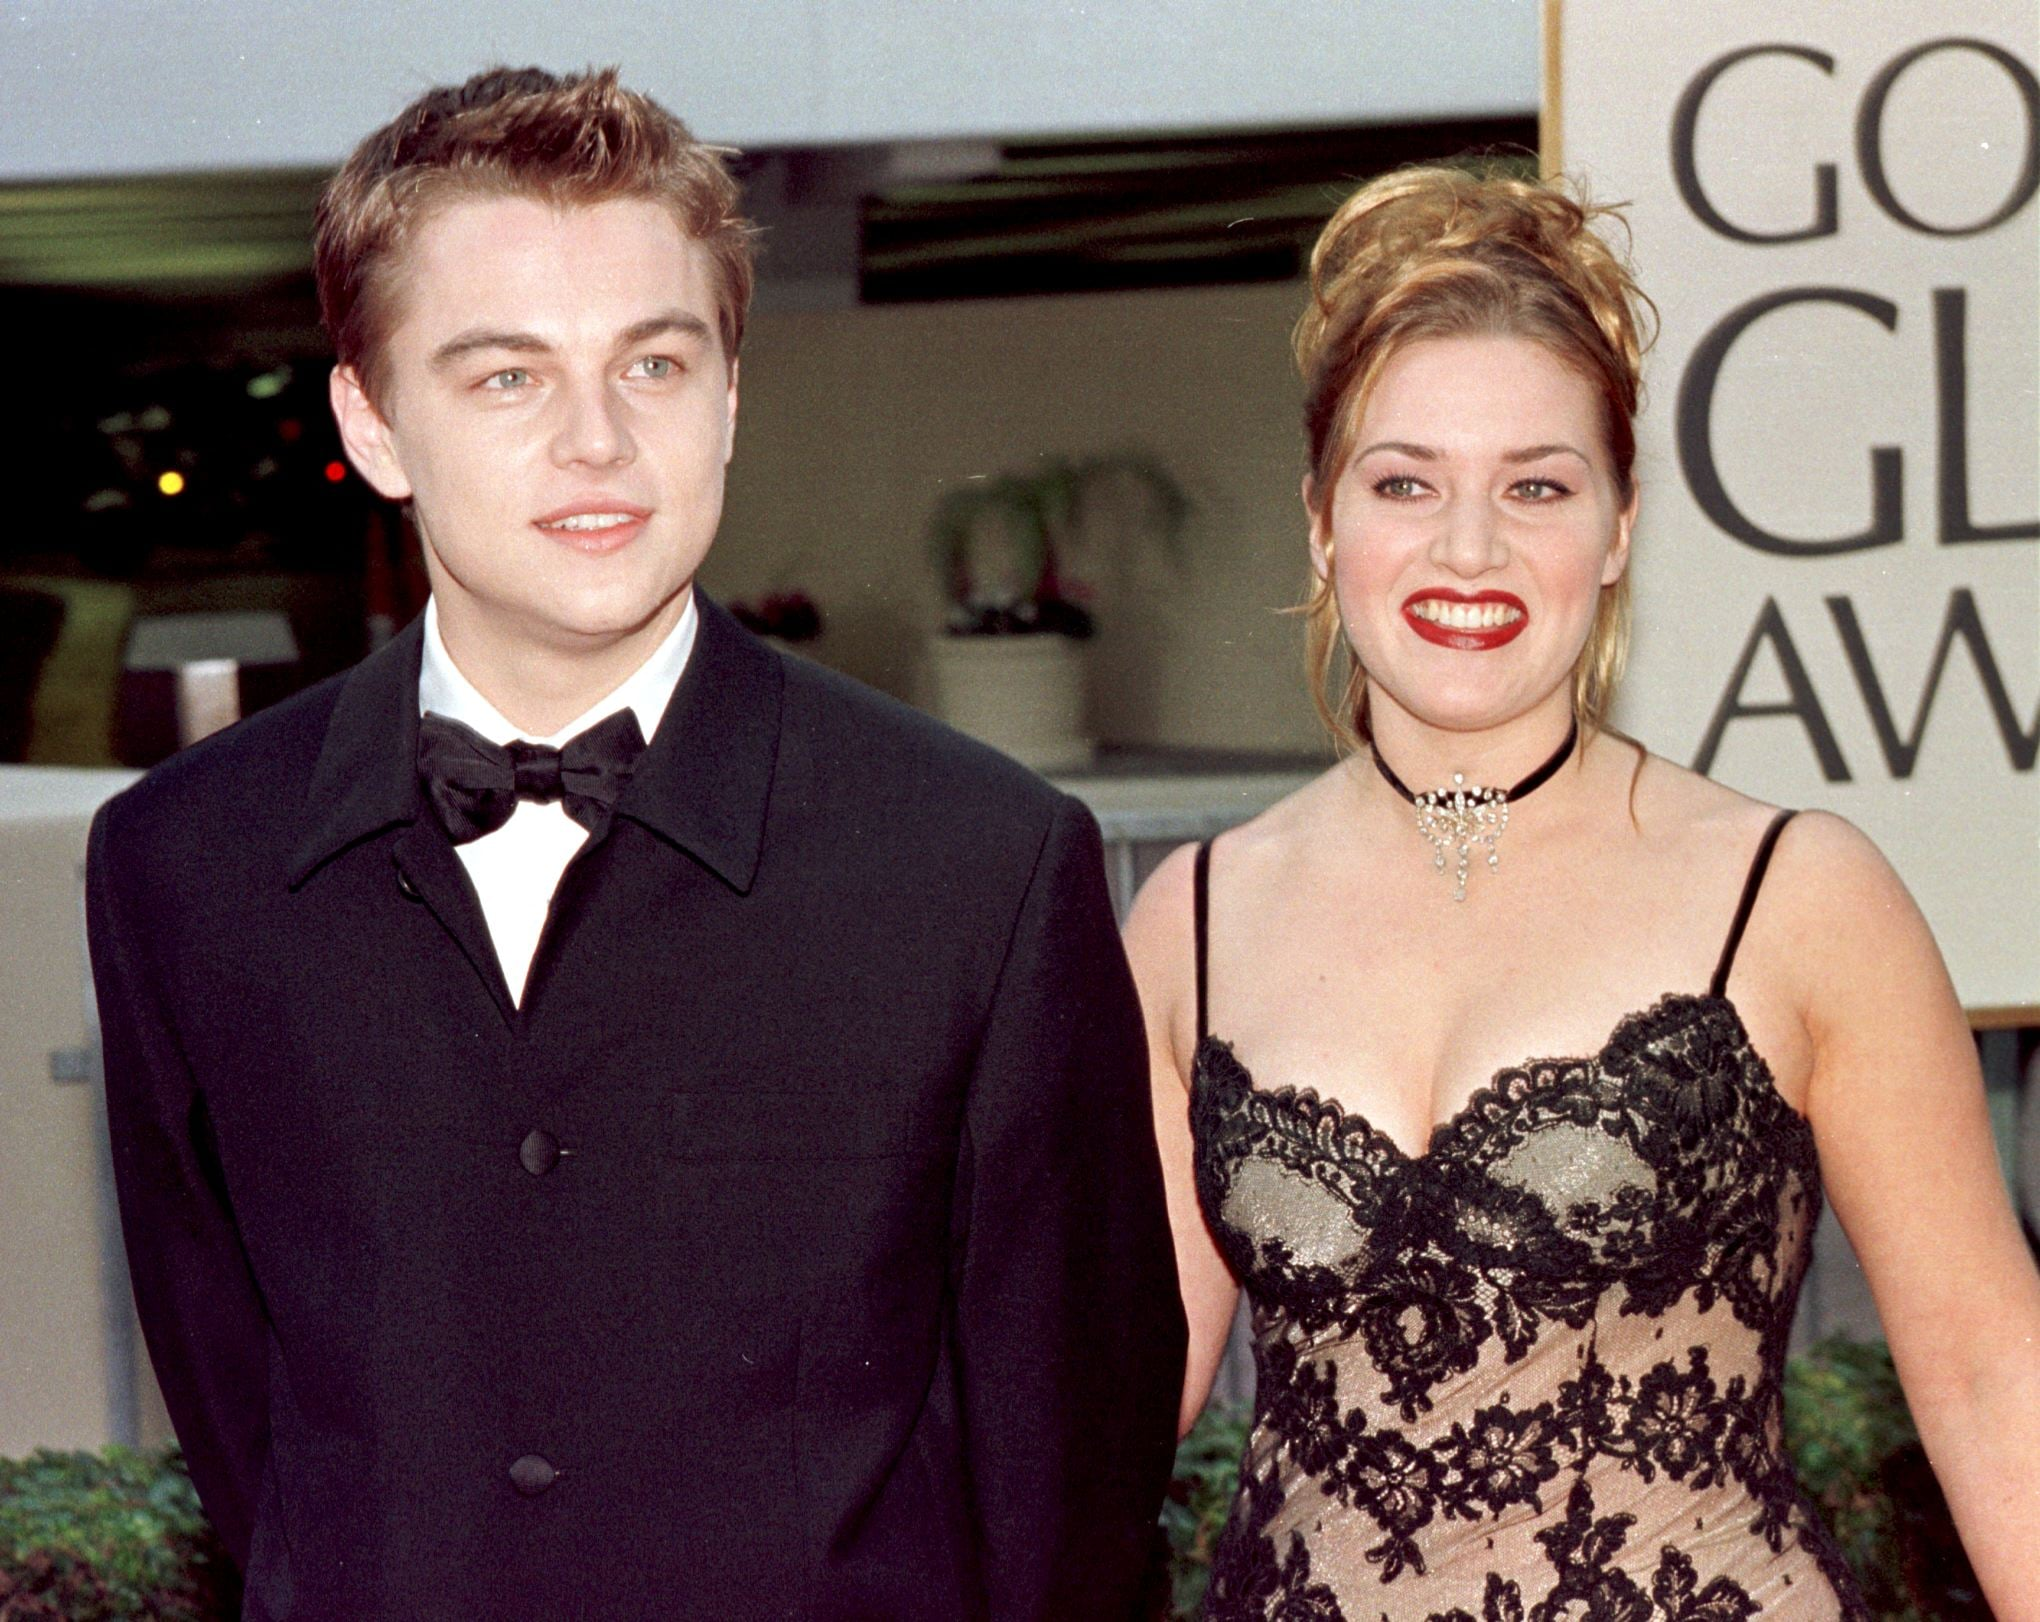 """That was just the beginning of a budding friendship, which only got stronger through the years. Leo told Oprah Winfrey, """"In a lot of ways, Kate and I have really grown up in this industry together; we've been a support mechanism for each other for such a long period of time. We've been there for each other and helped guide each other.""""  That wasn't the first time Leo told Oprah great things about Kate. He stopped by The Oprah Winfrey Show in 2004 while promoting The Aviator, but, of course, talk turned to Titanic and his relationship with Kate."""